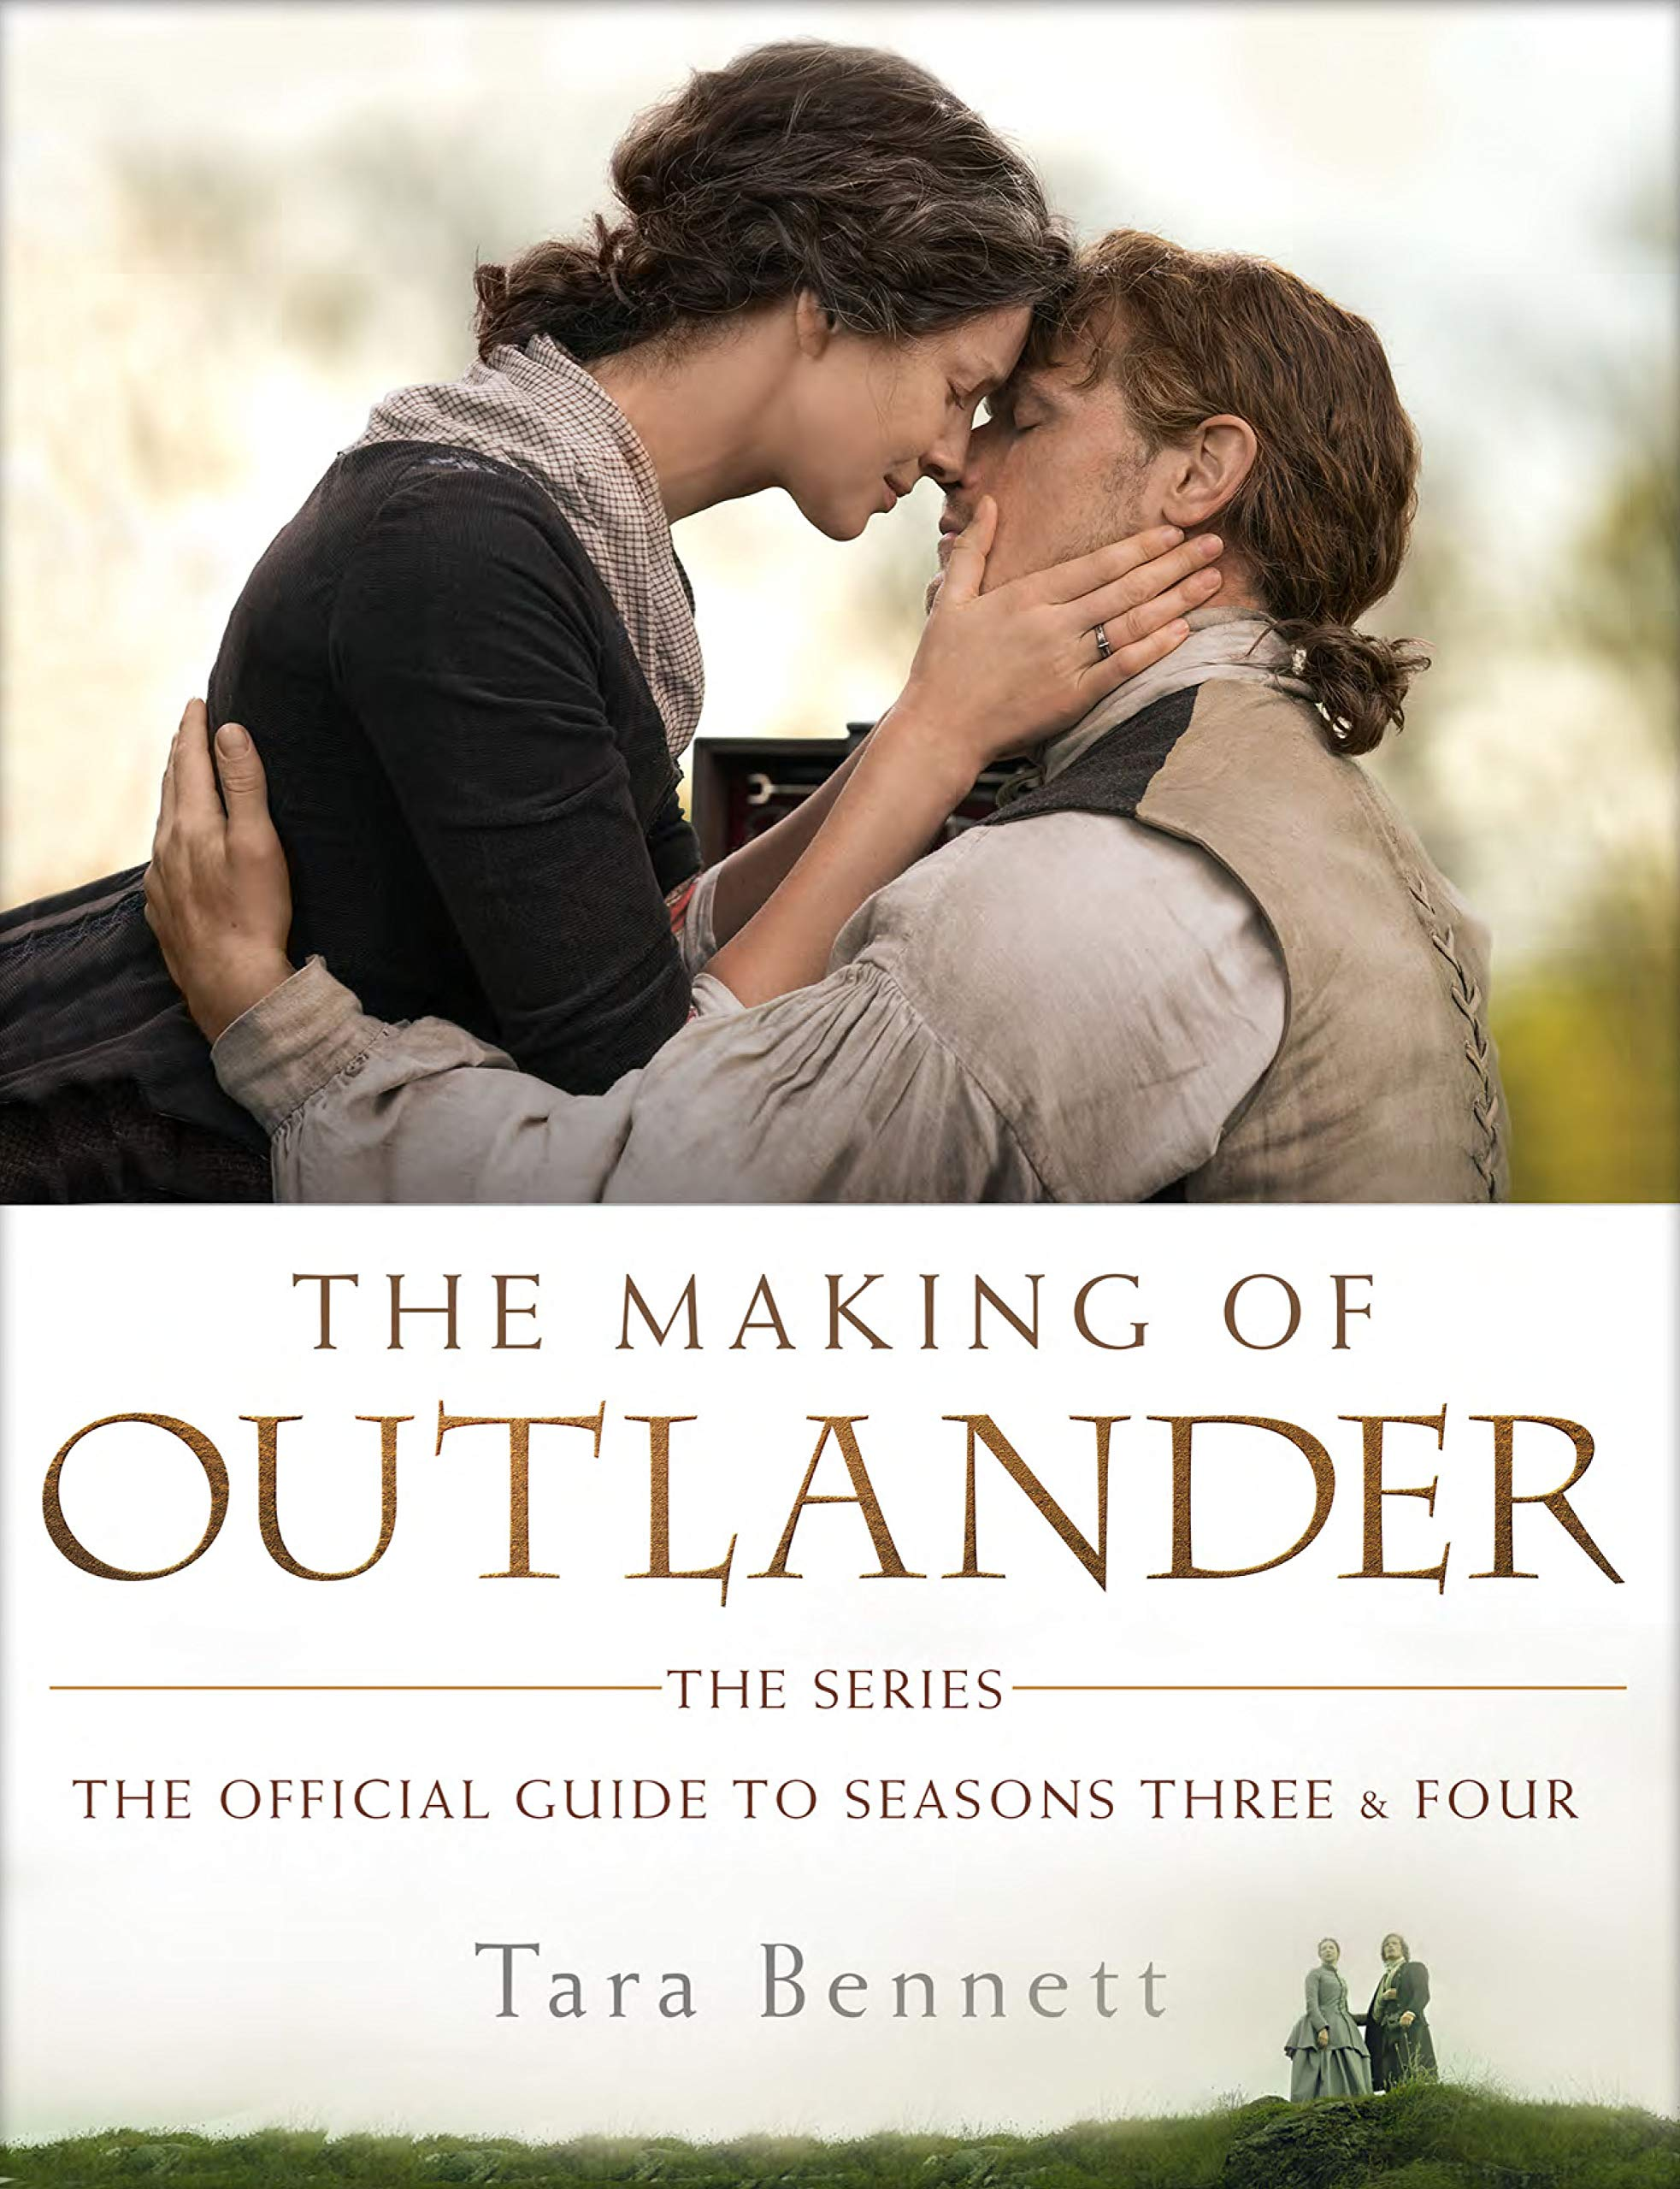 THE MAKING OF OUTLANDER: The Official Guide to Seasons 3 & 4